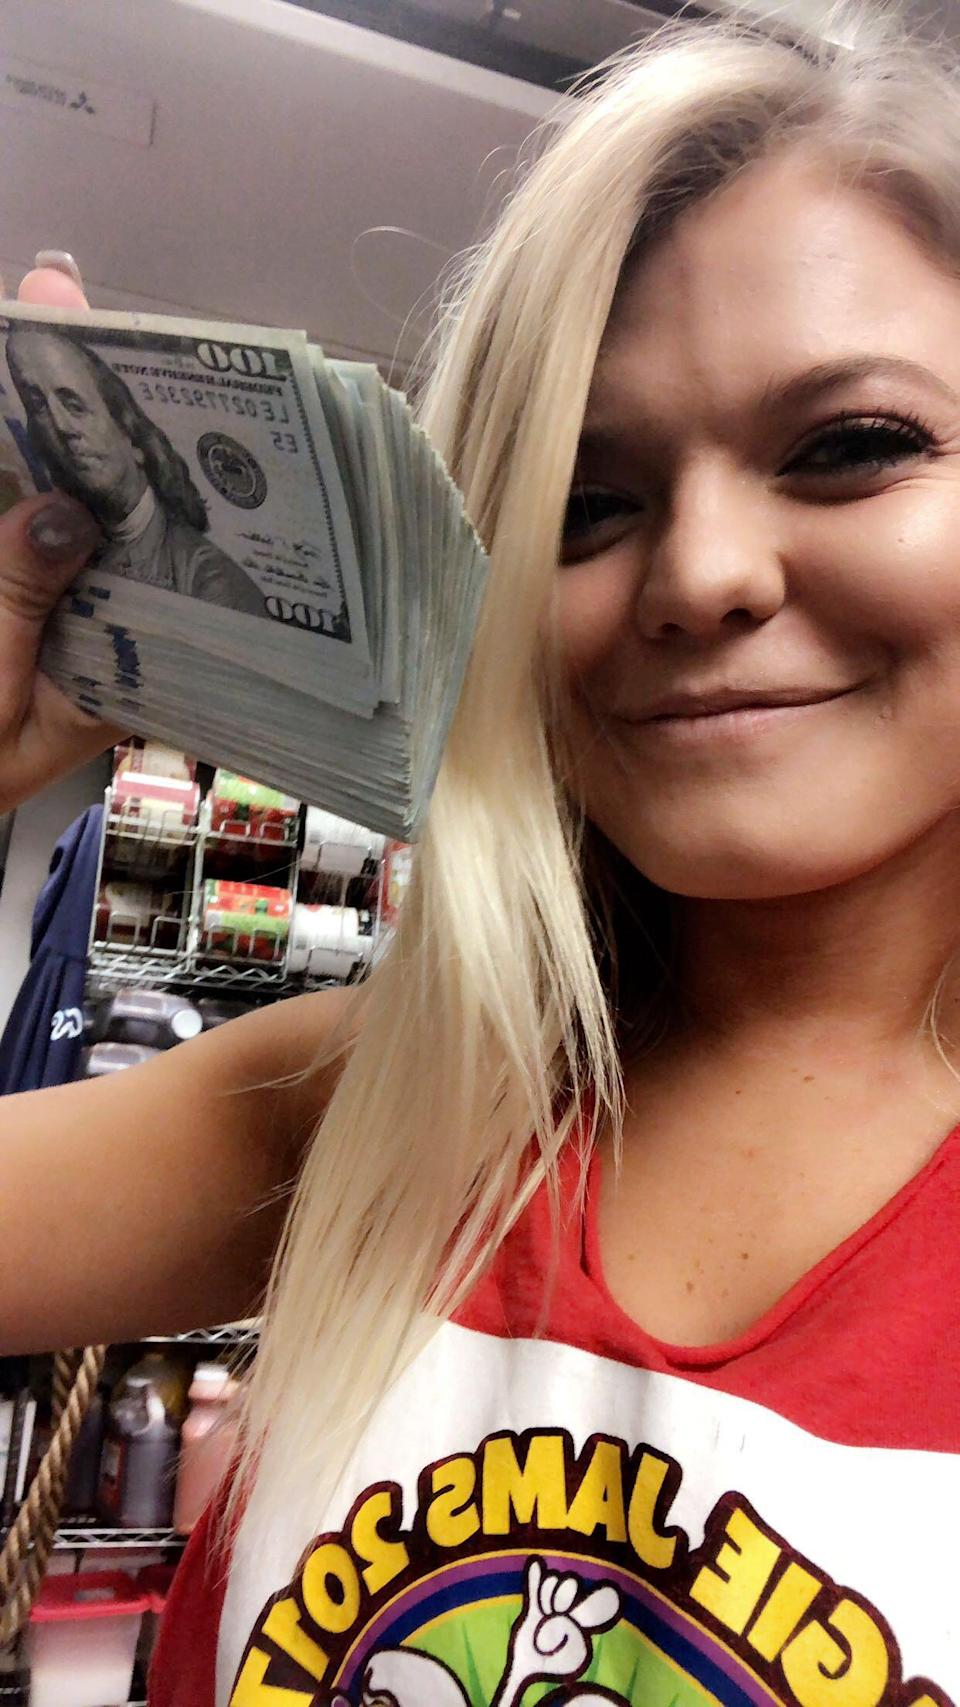 YouTuber Mr. Beast leaves a $10,000 tip for a North Carolina waitress. (Photo: Sup Dogs)